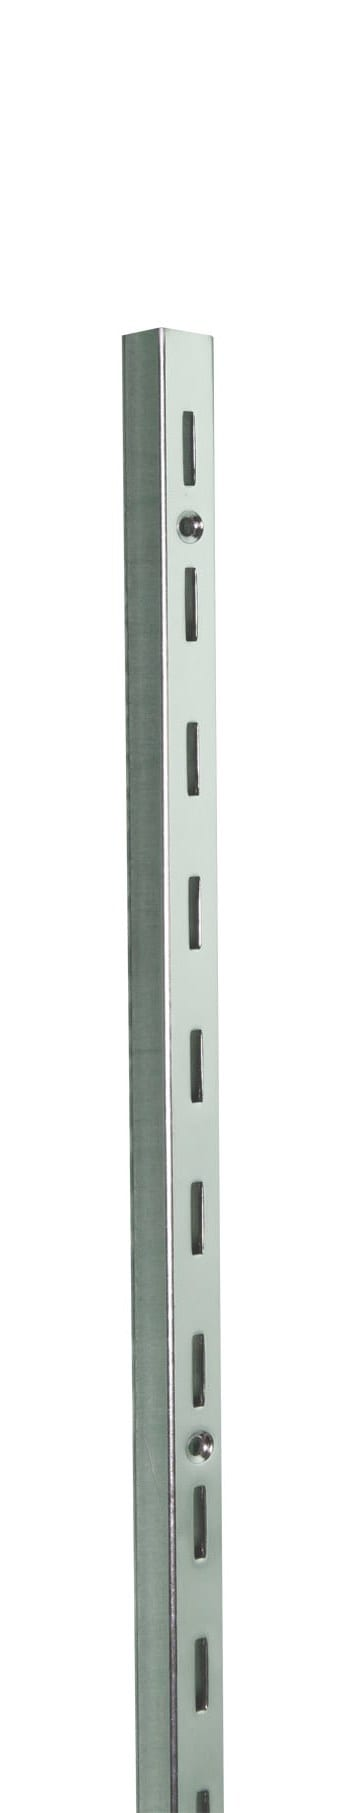 Wall Stripping – Single Slotted – Chrome-0